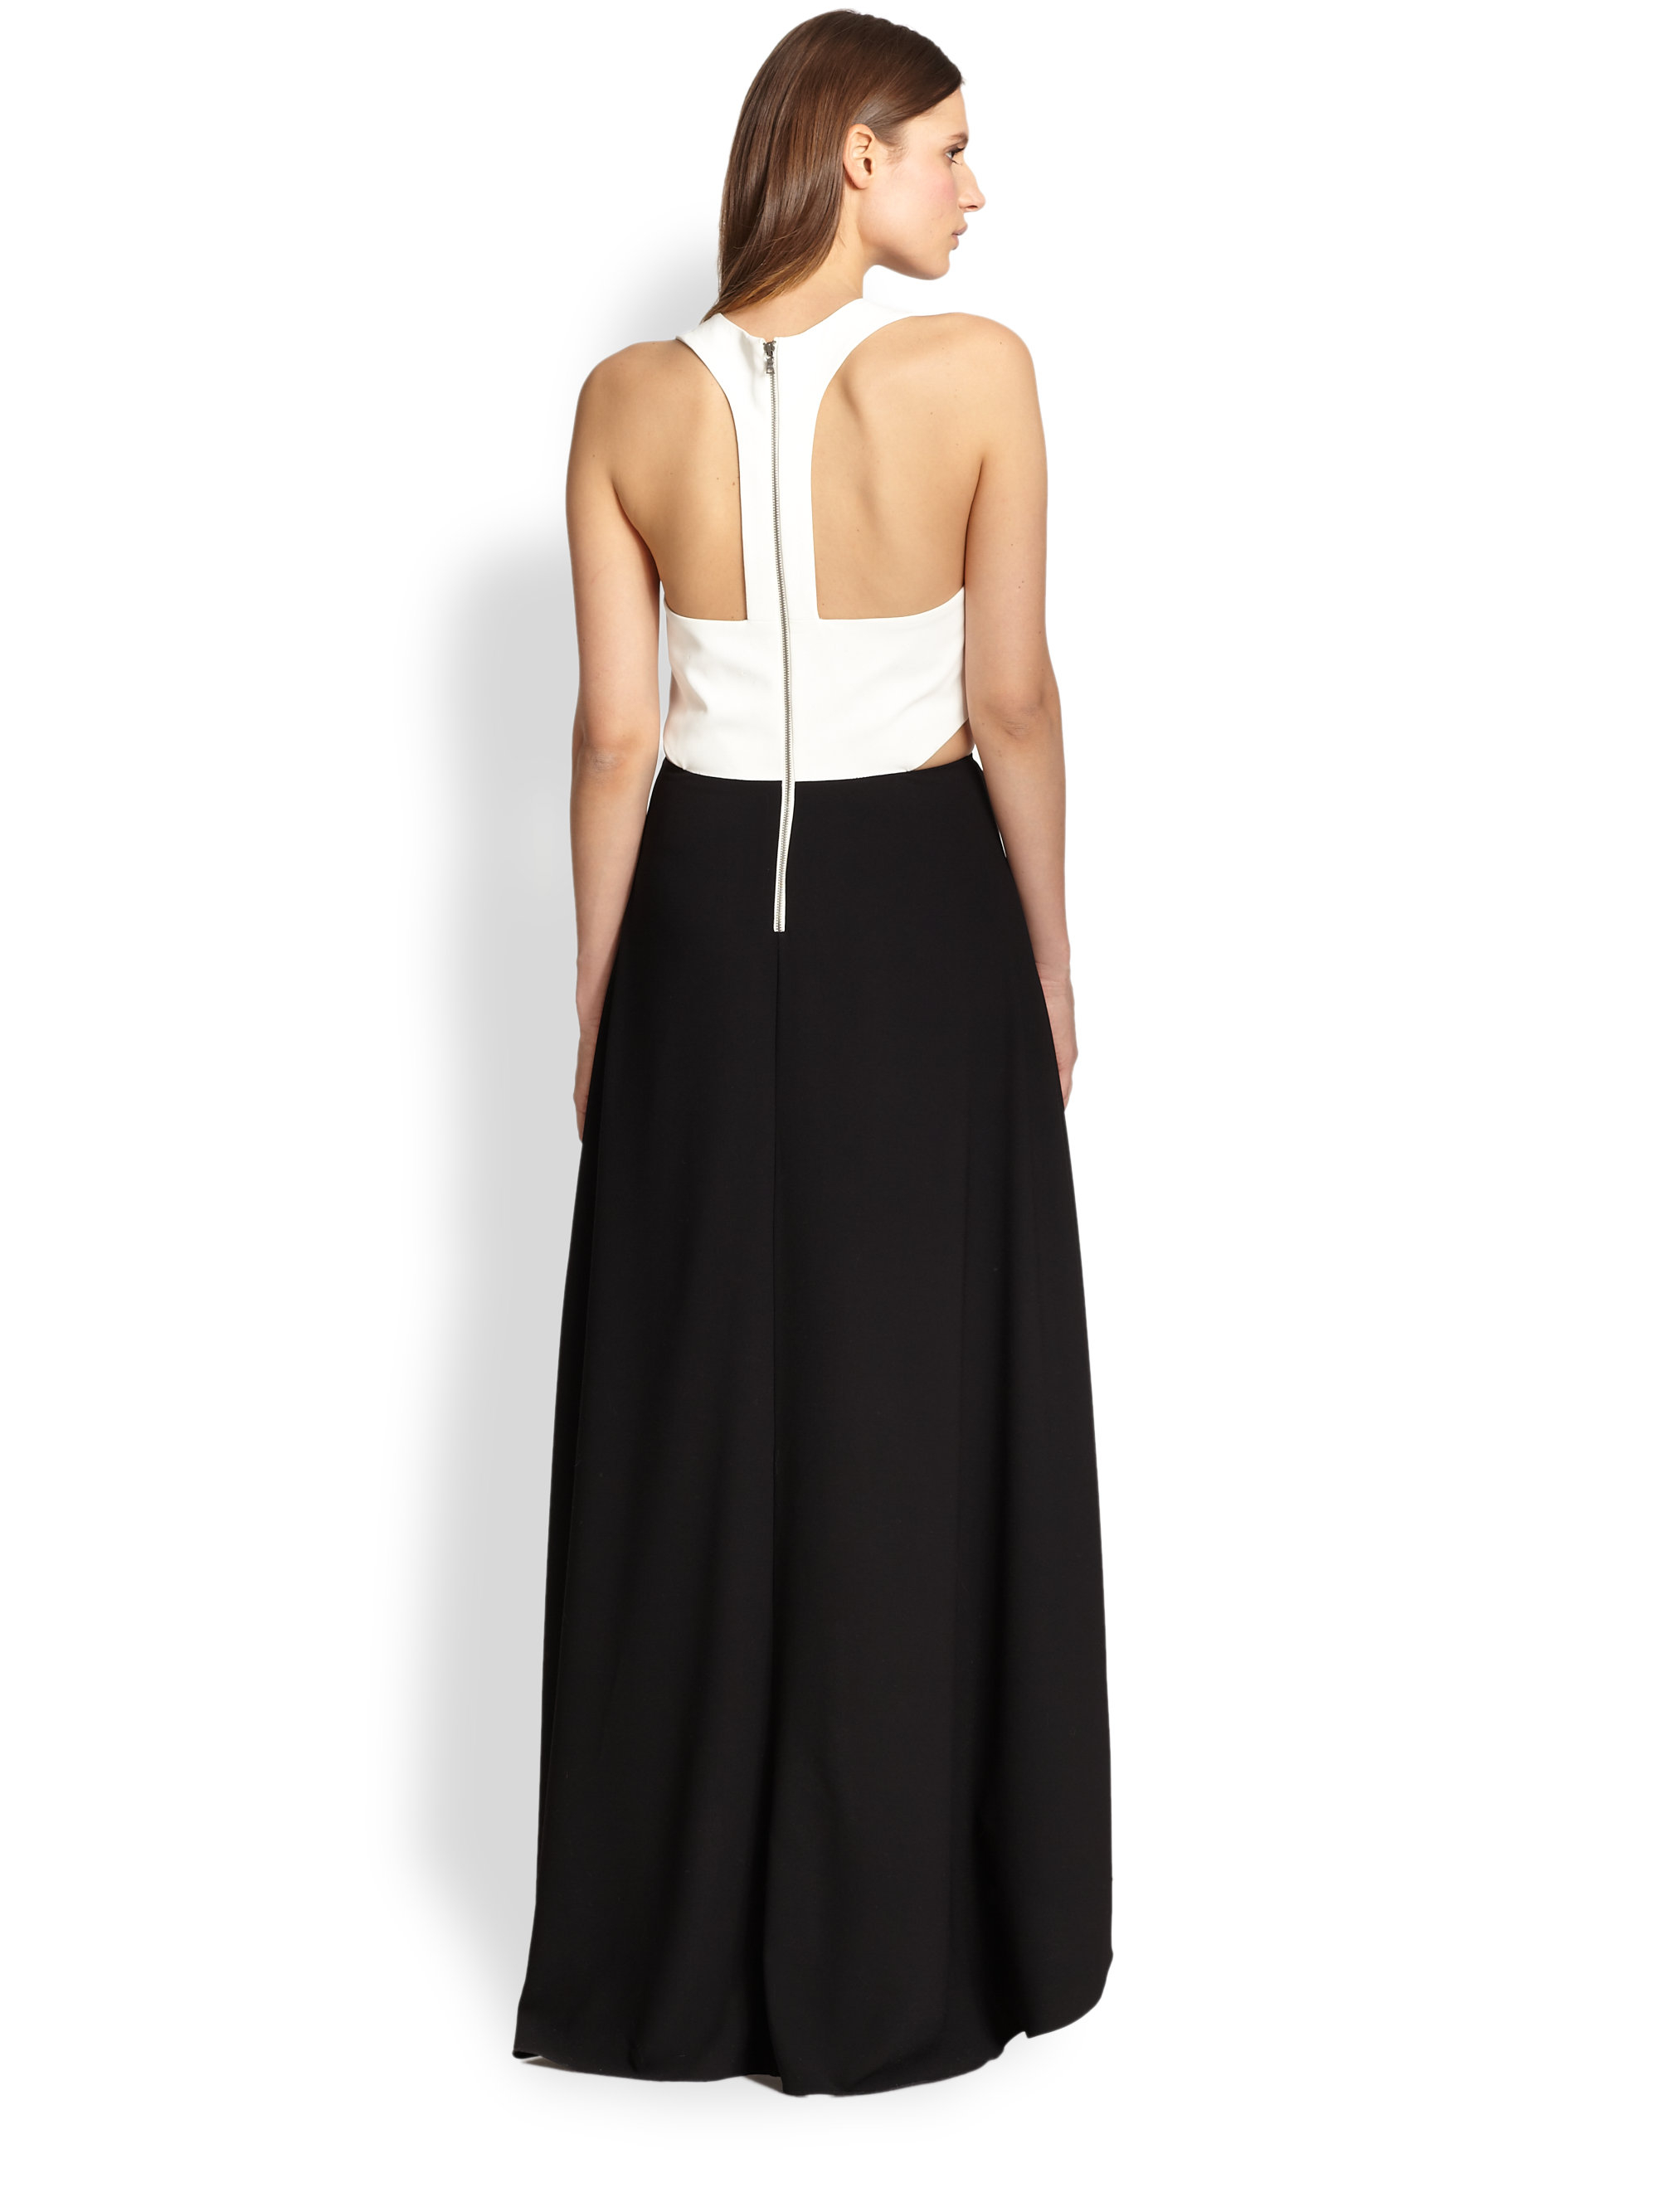 Alice + olivia Cutout Racerback Maxi Dress in Black | Lyst